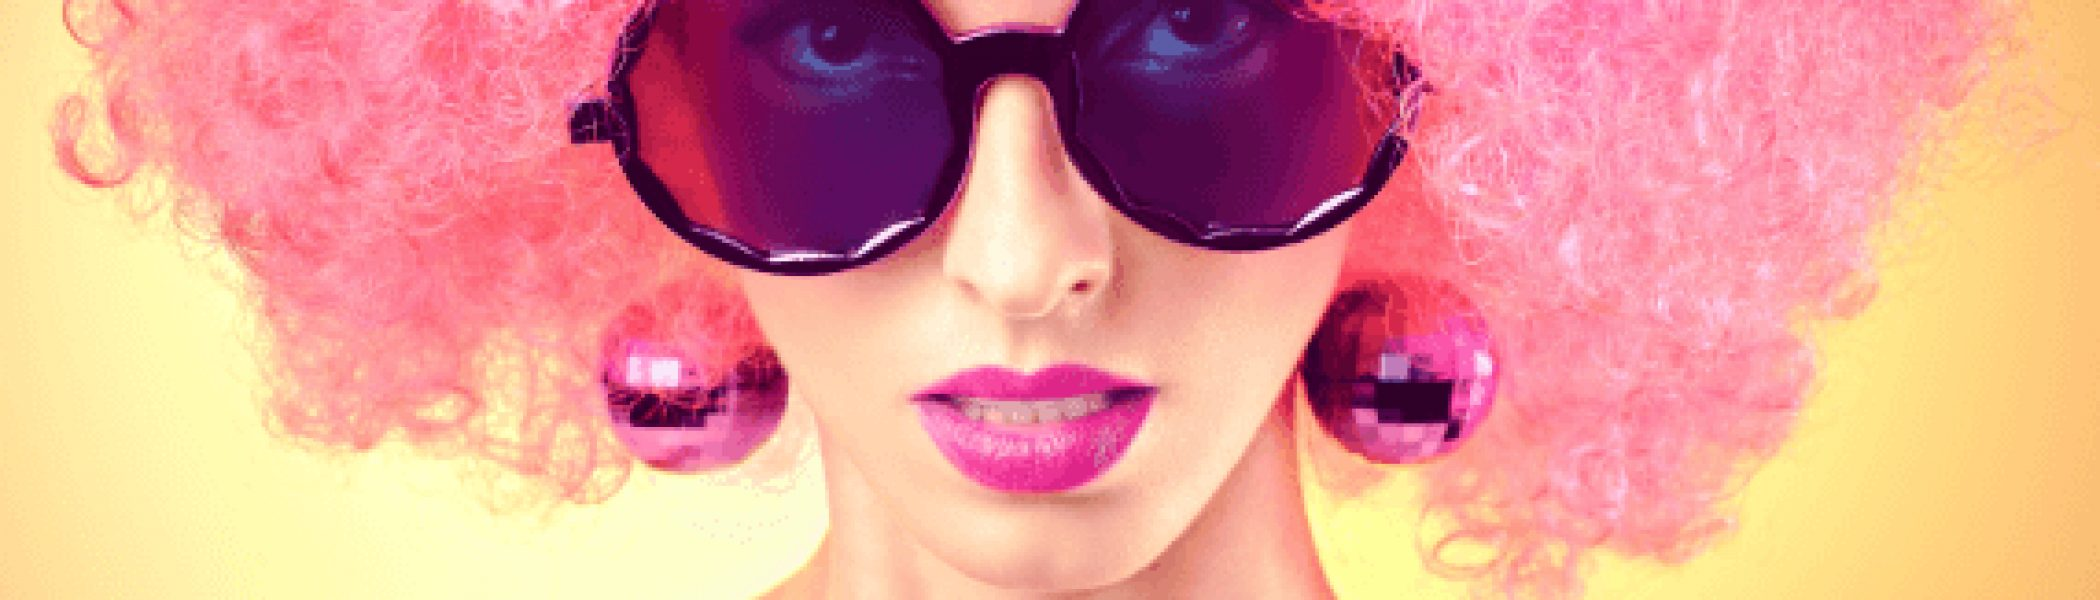 Fashion portrait of sexy nude beauty woman, unusual colourful look. Vivid party lady. Provocative attractive girl in stylish sunglasses with trendy afro hairstyle on yellow. Curly hipster girl face